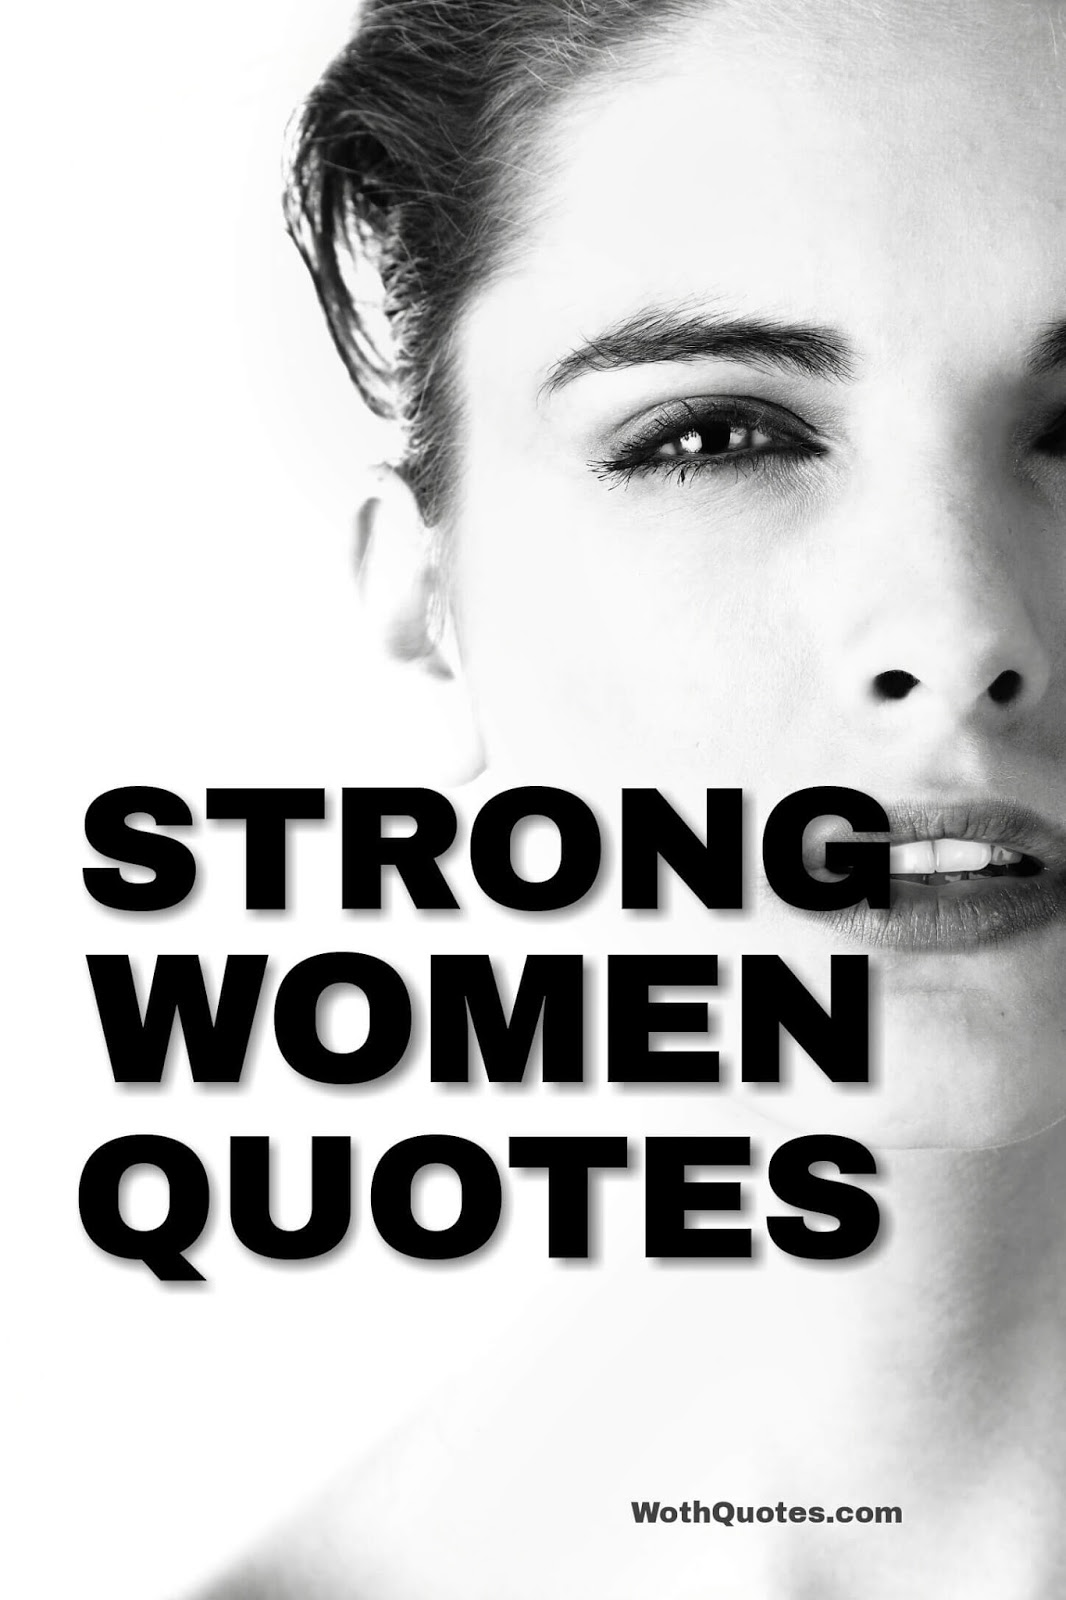 Quotes Women Top 128 Quotes About Strong Women  Wothquotes  Wothquotes Collection